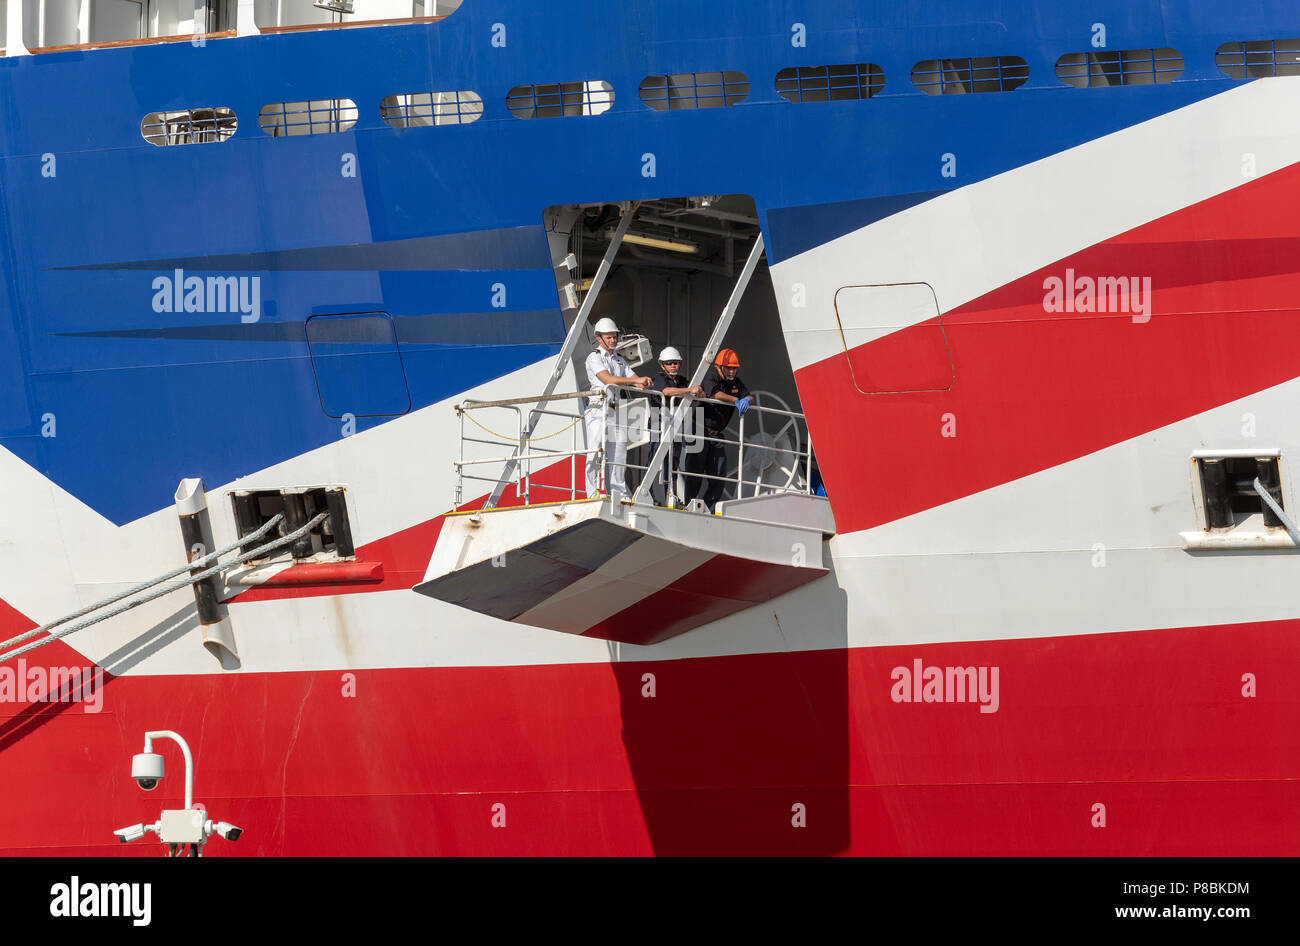 Ship's officer standing on the mooring plaform to oversee the safety of the berthing of this cruise liner, Port of Southampton, England UK - Stock Image